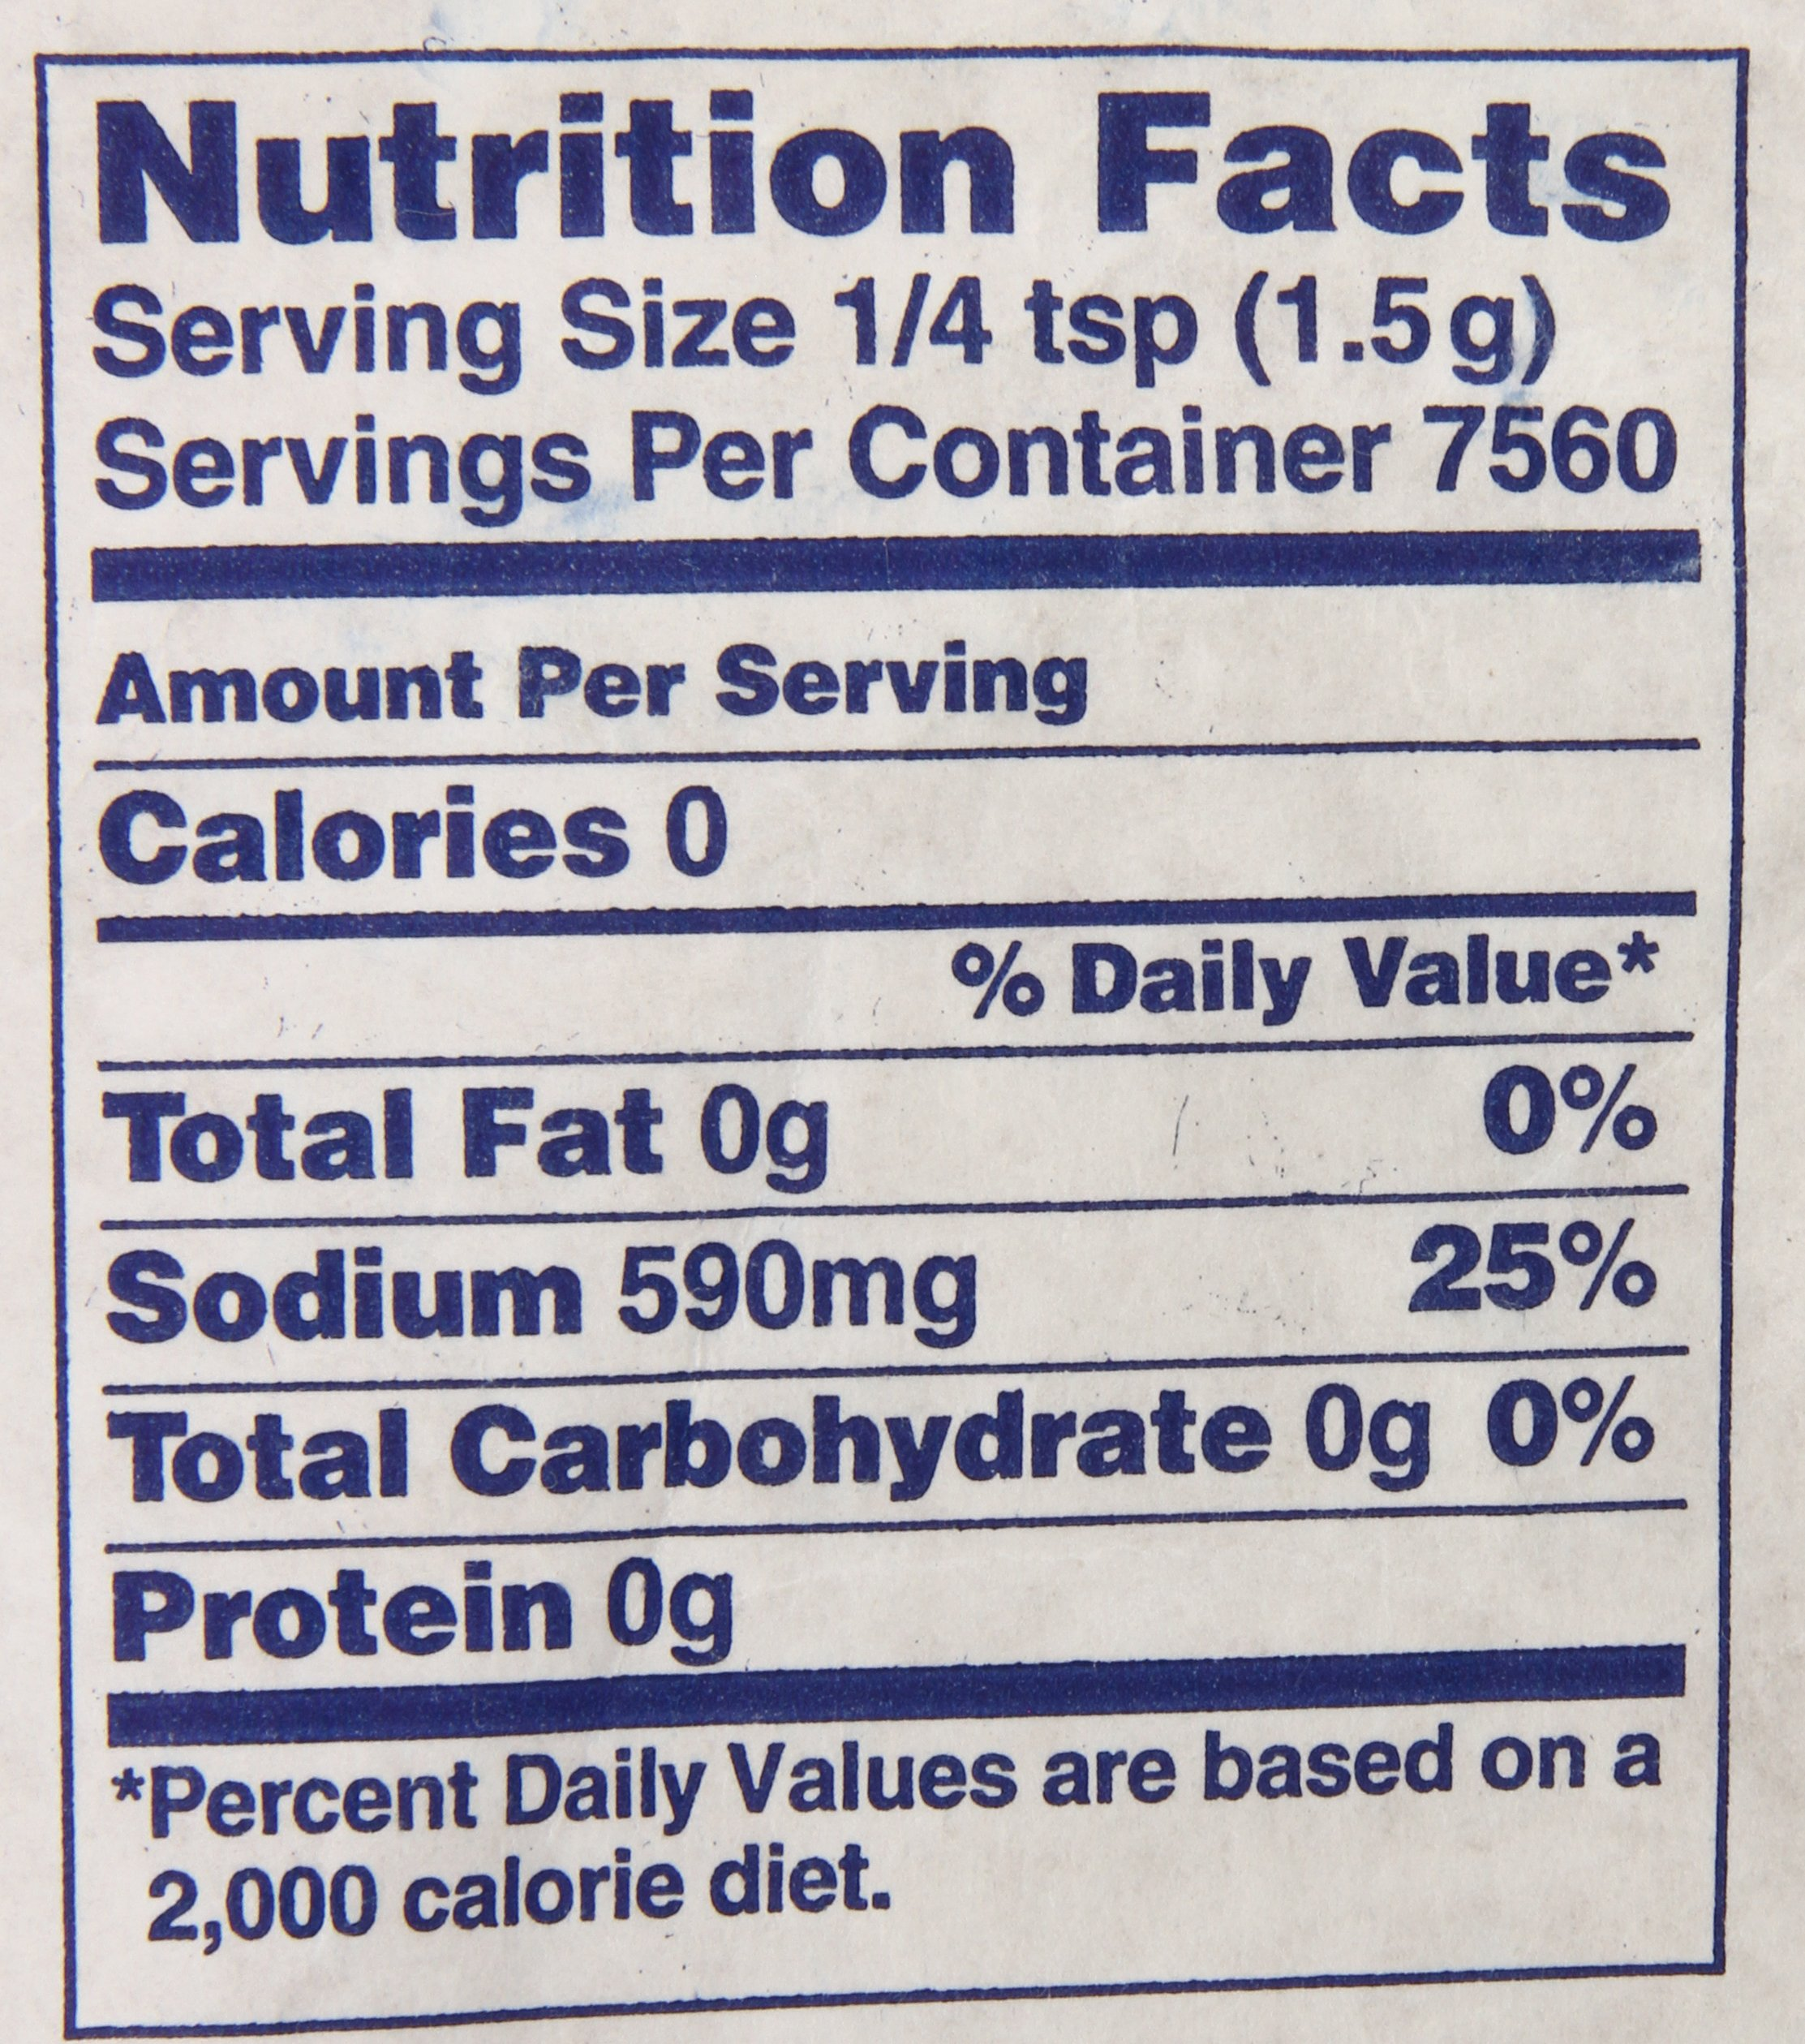 MORTON Table Salt, Bulk Salt, Foodservice, Great for Restaurants, Excellent for Cooking, Baking and Seasoning, Non Iodized Salt, Iodide Free, 25 Pound by Morton (Image #2)